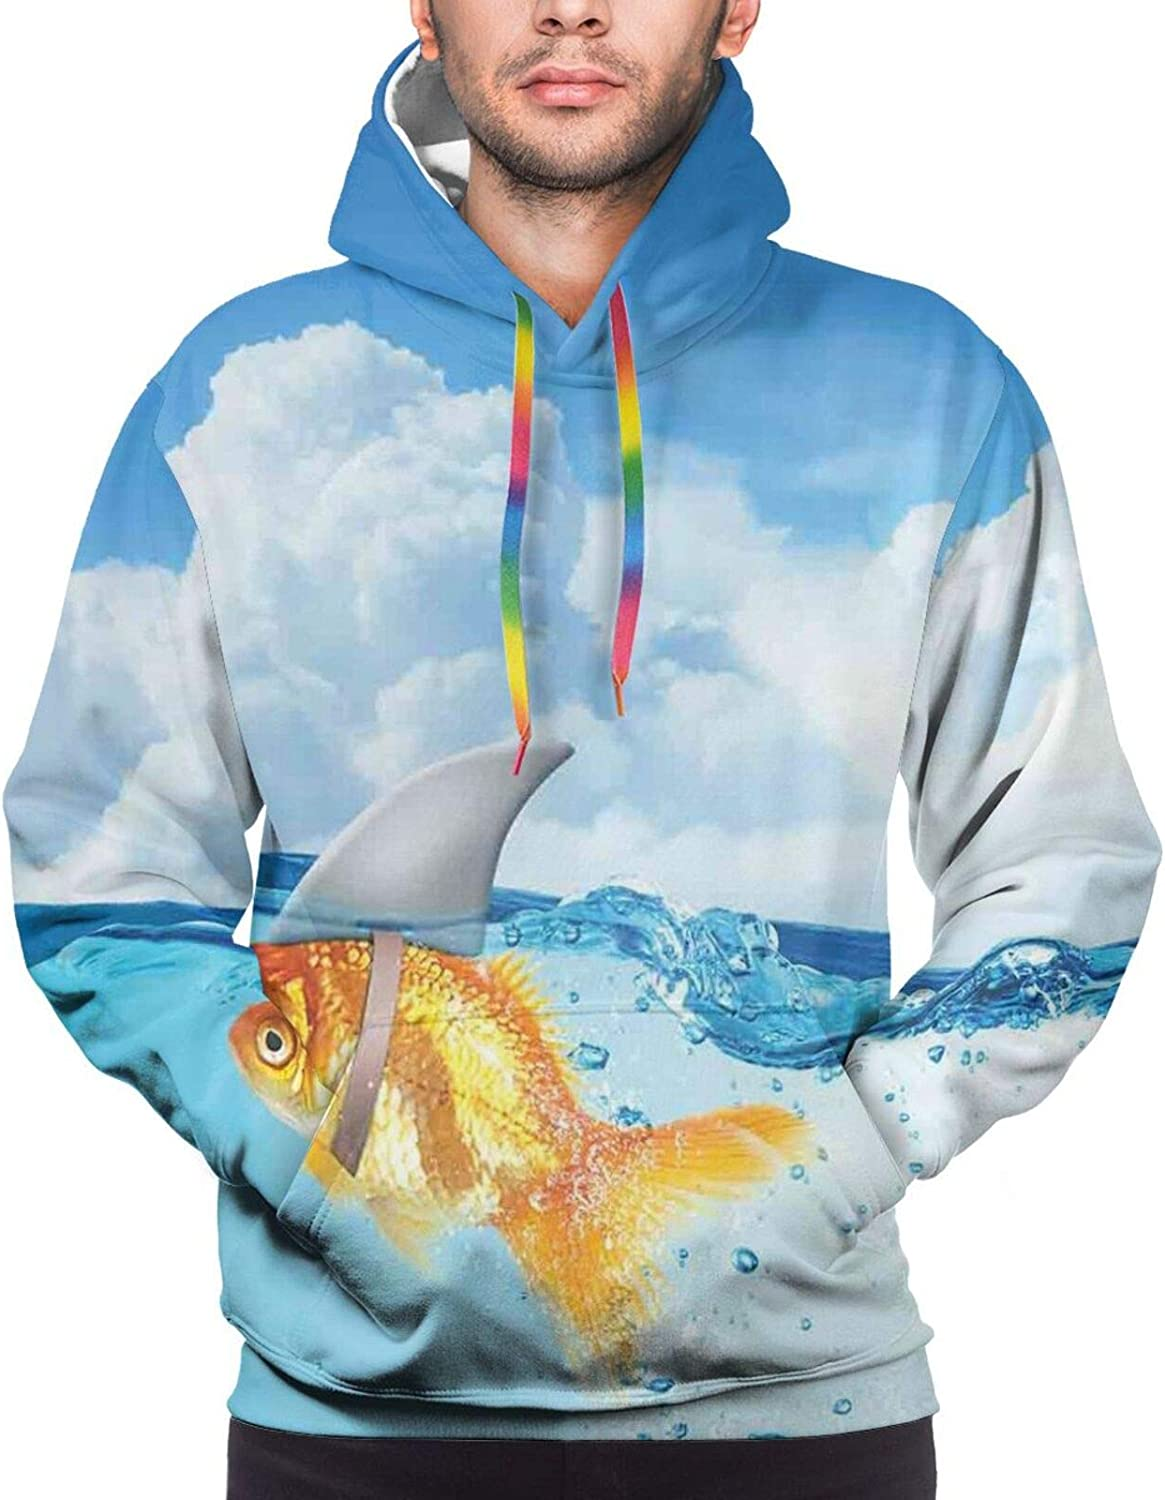 Men's Hoodies Sweatshirts,Cute Goldfish with Shark Fin On Top of The Water Fake Comic Nature Image